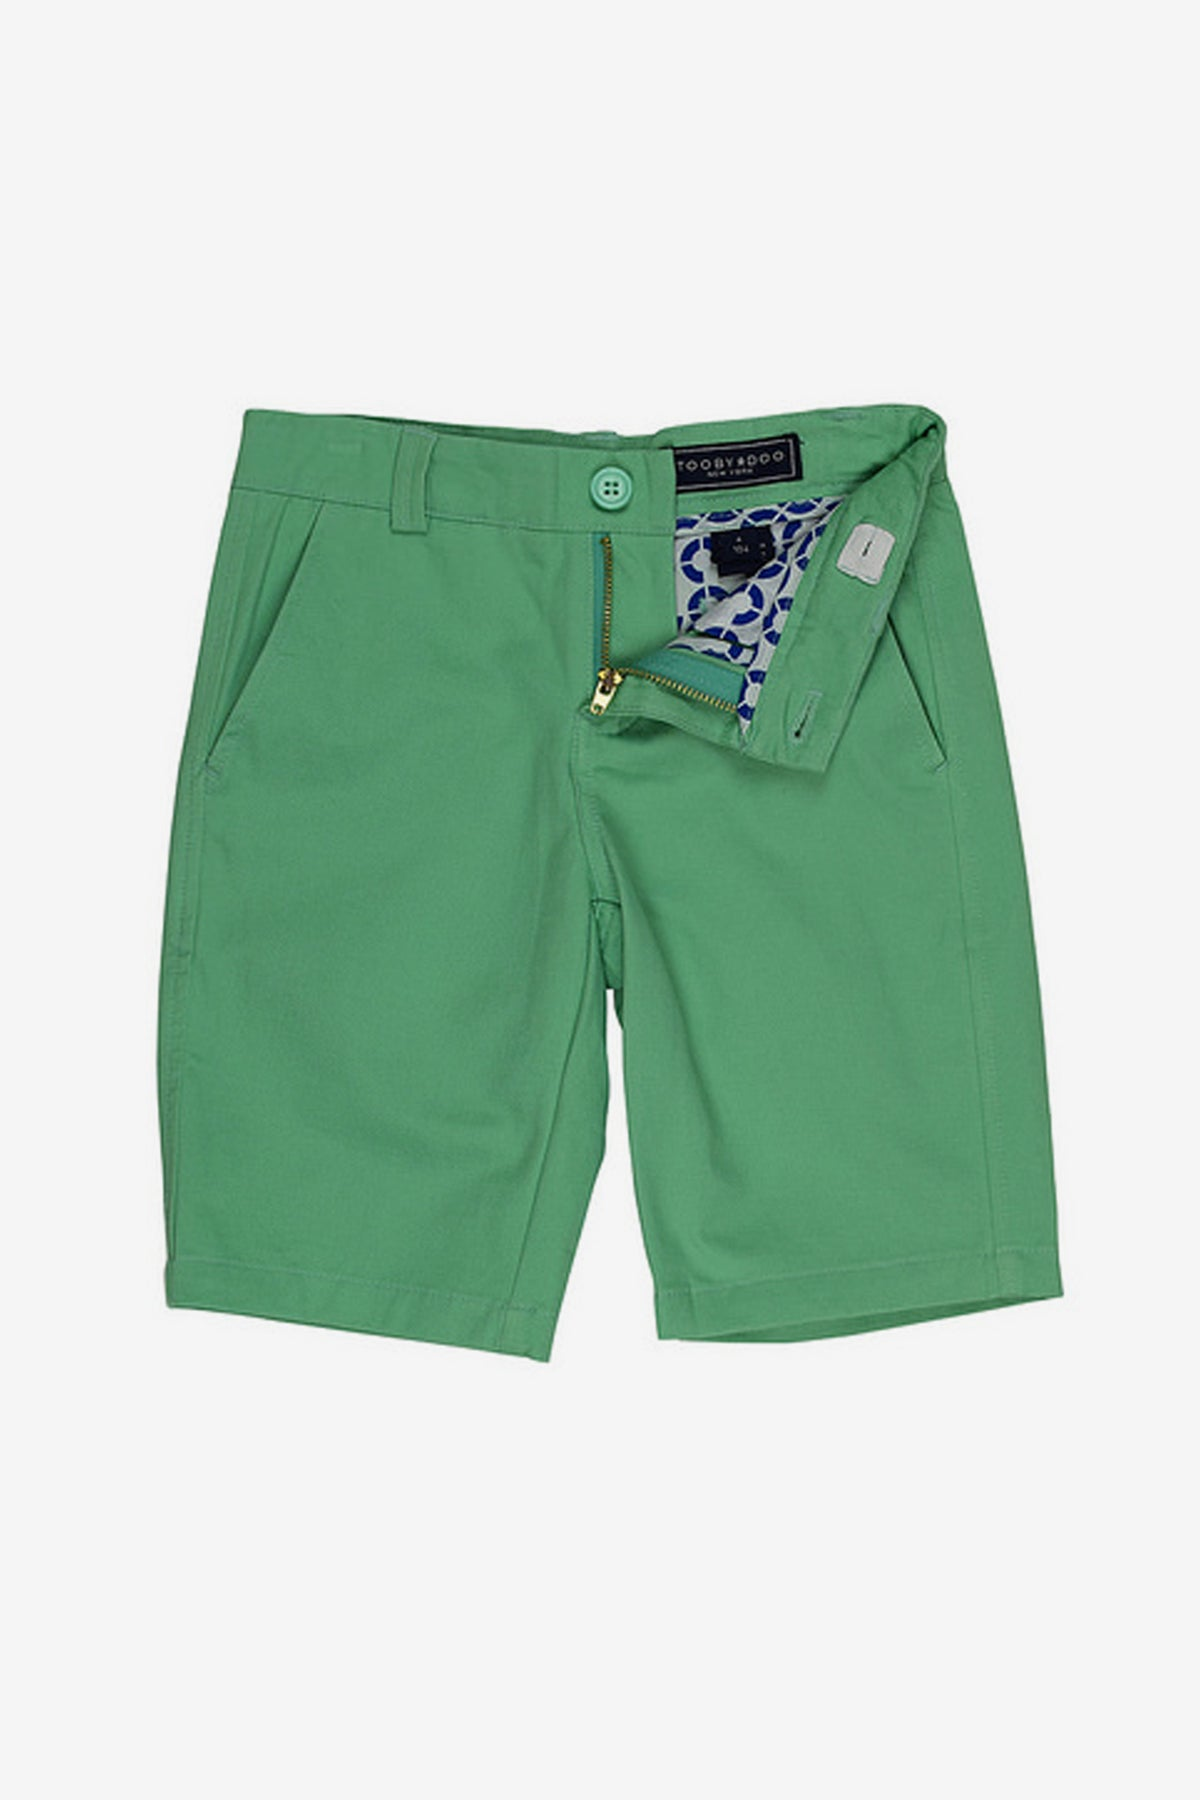 Toobydoo Quincy Shorts